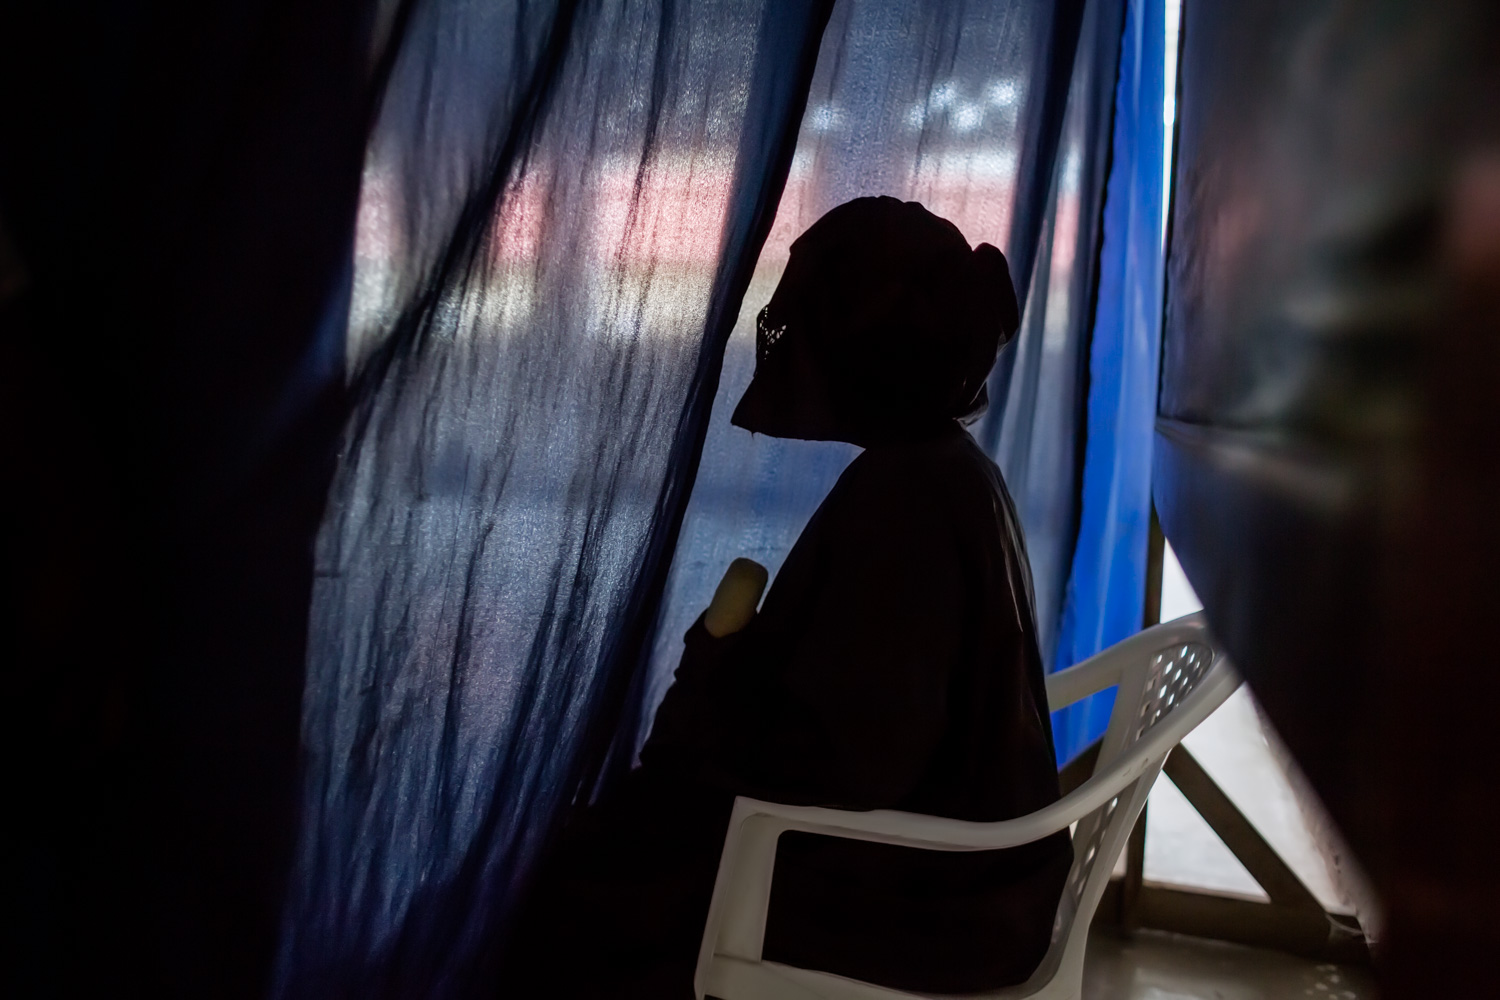 A veiled rape survivor testified in court behind a curtain to further shield her from the eyes of those she accused. Special care is taken to provide rape survivors with disguises, curtains, veils, whatever they may need to feel secure when giving their testimony. The women are referred to by numbers instead of by name to maintain their anonymity.